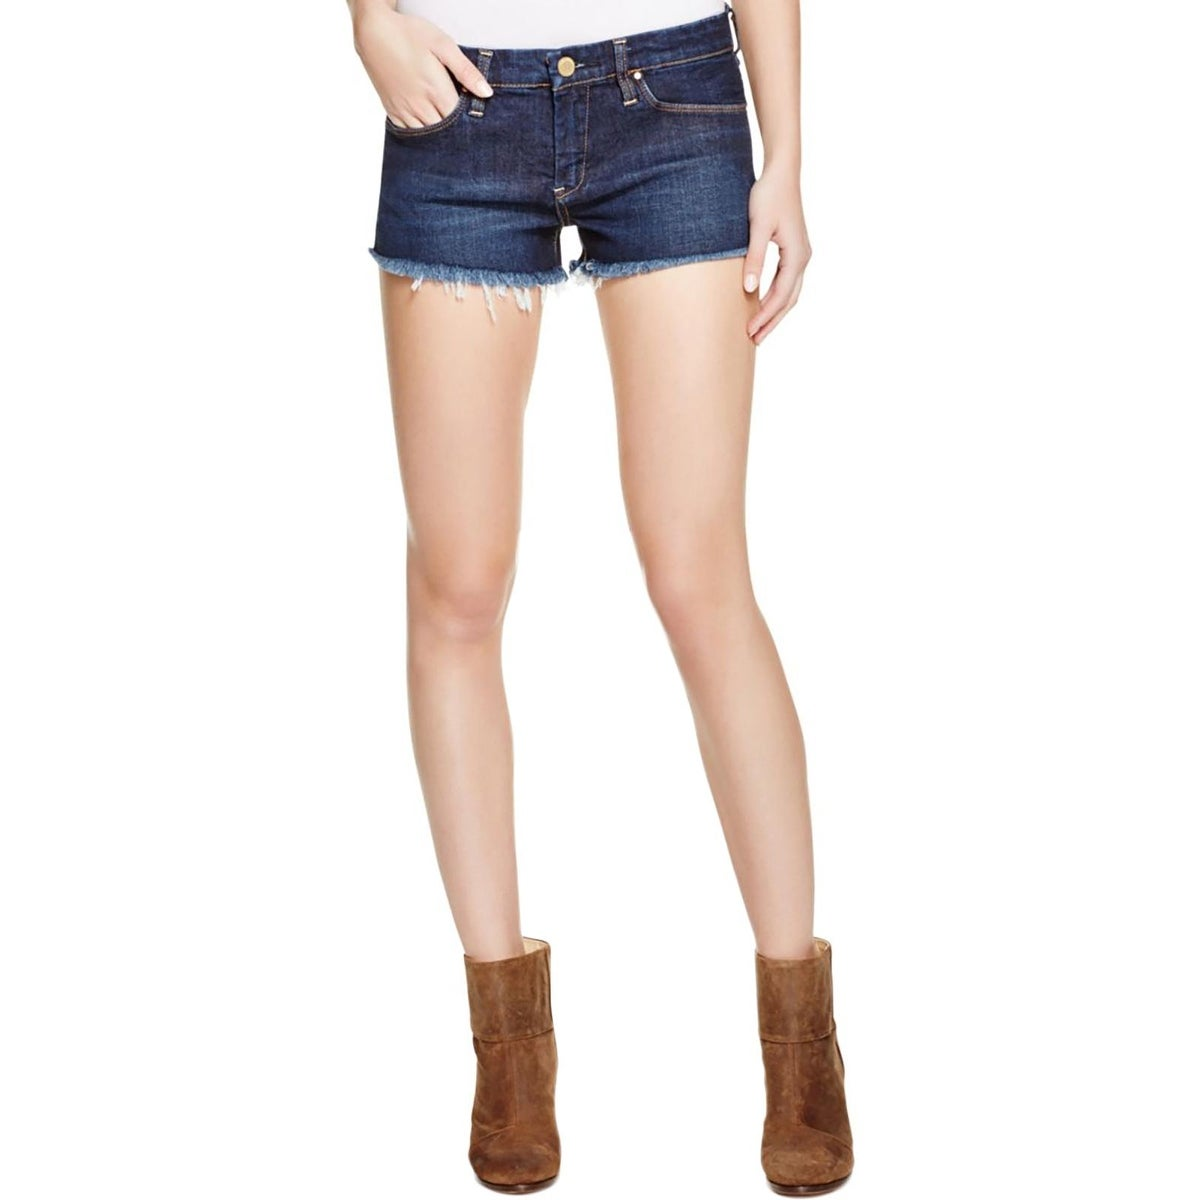 fd92eabe2b Shop [BLANKNYC] Womens Little Queenie Denim Shorts Unhemmed Dark Wash -  Free Shipping On Orders Over $45 - Overstock.com - 17404013